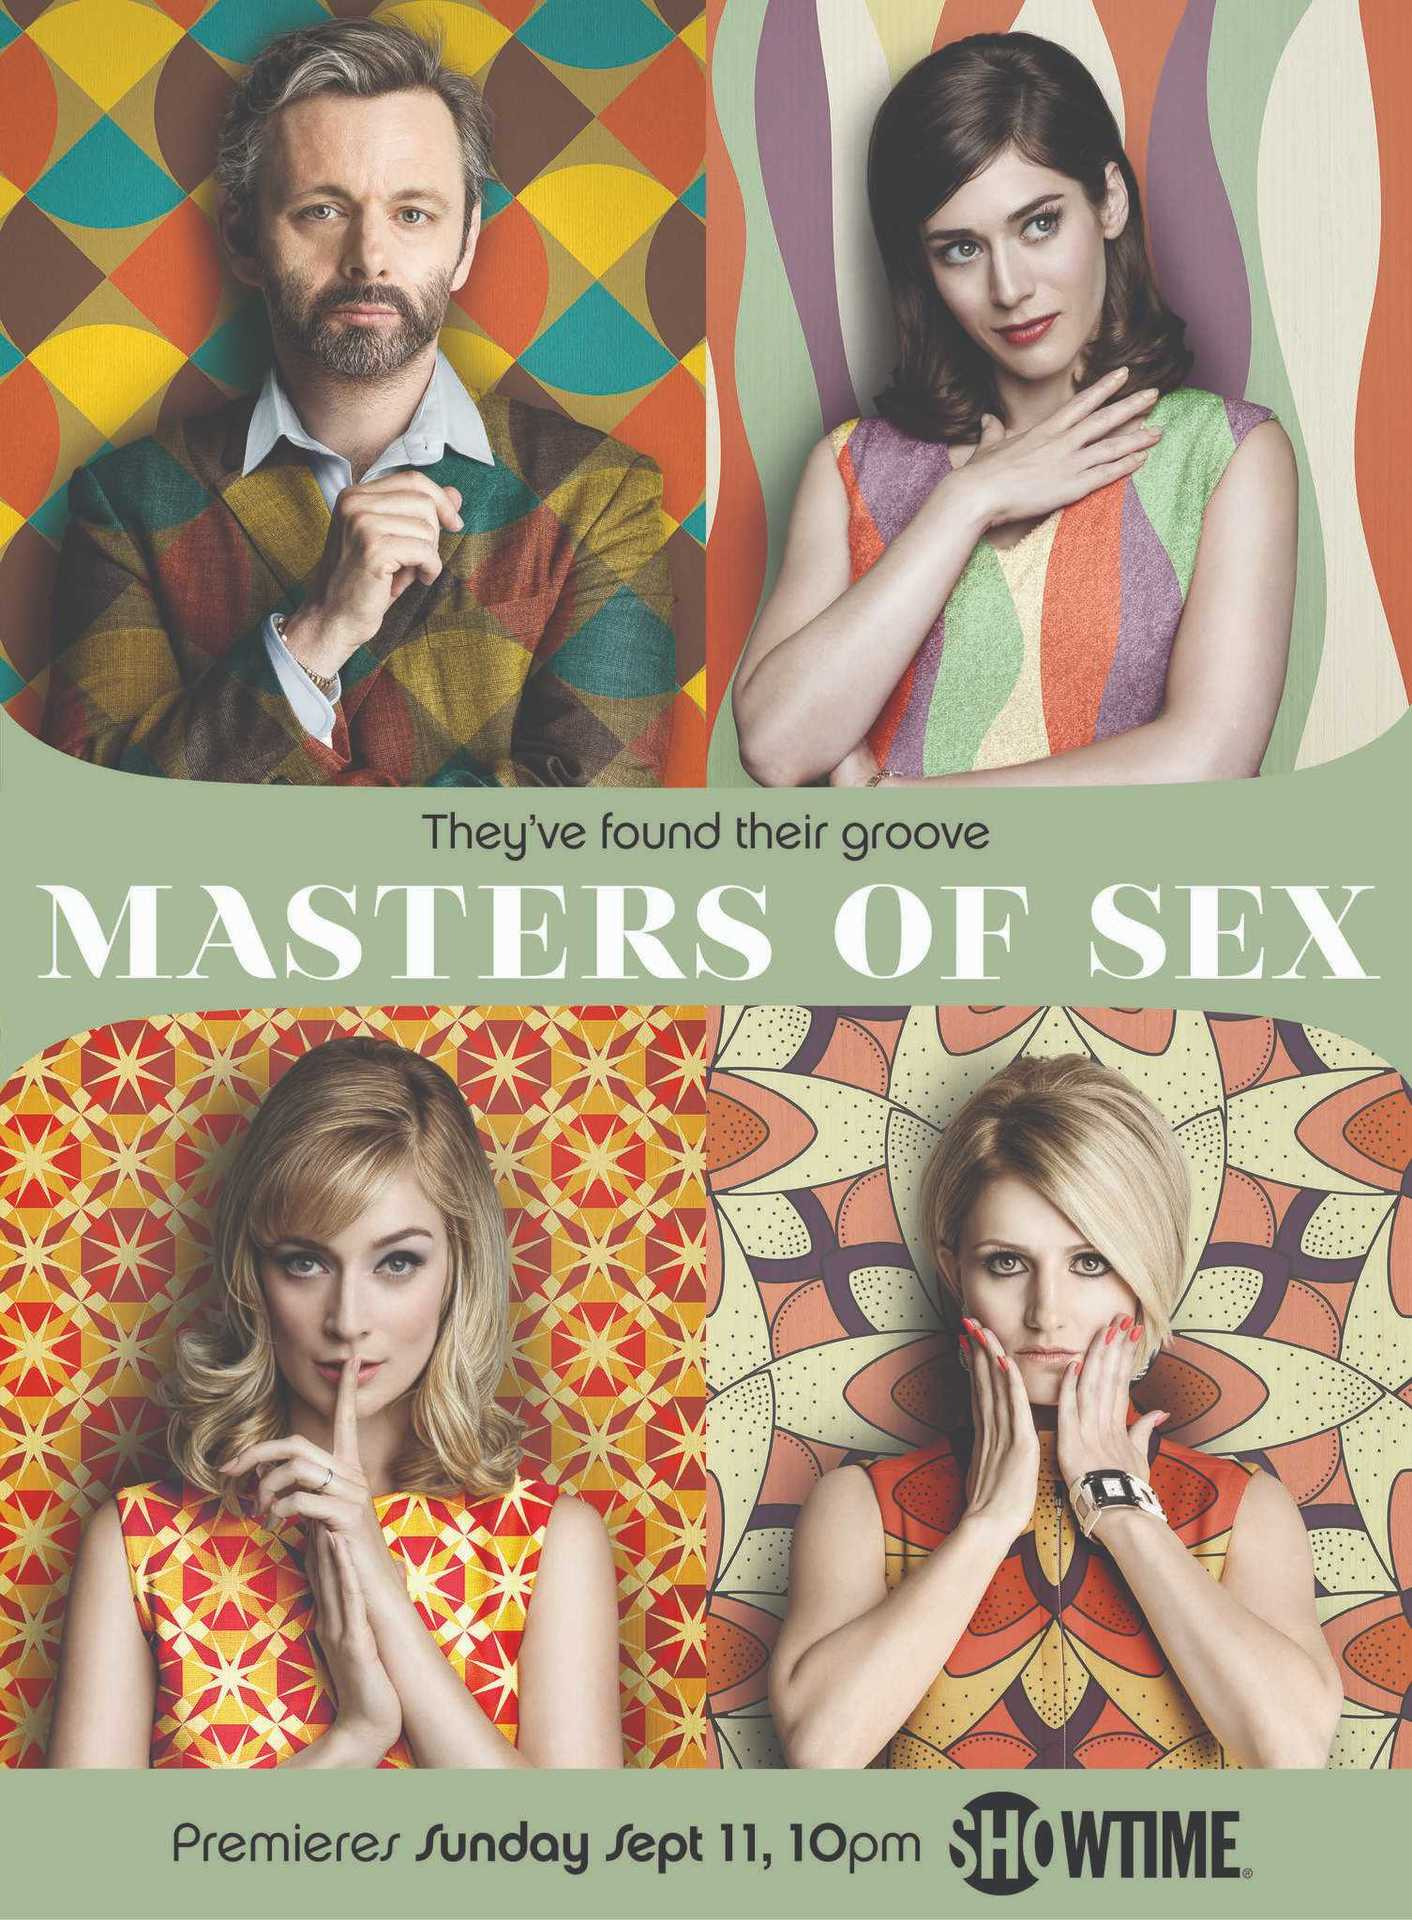 5 reasons why you should watch 'Masters of Sex' image